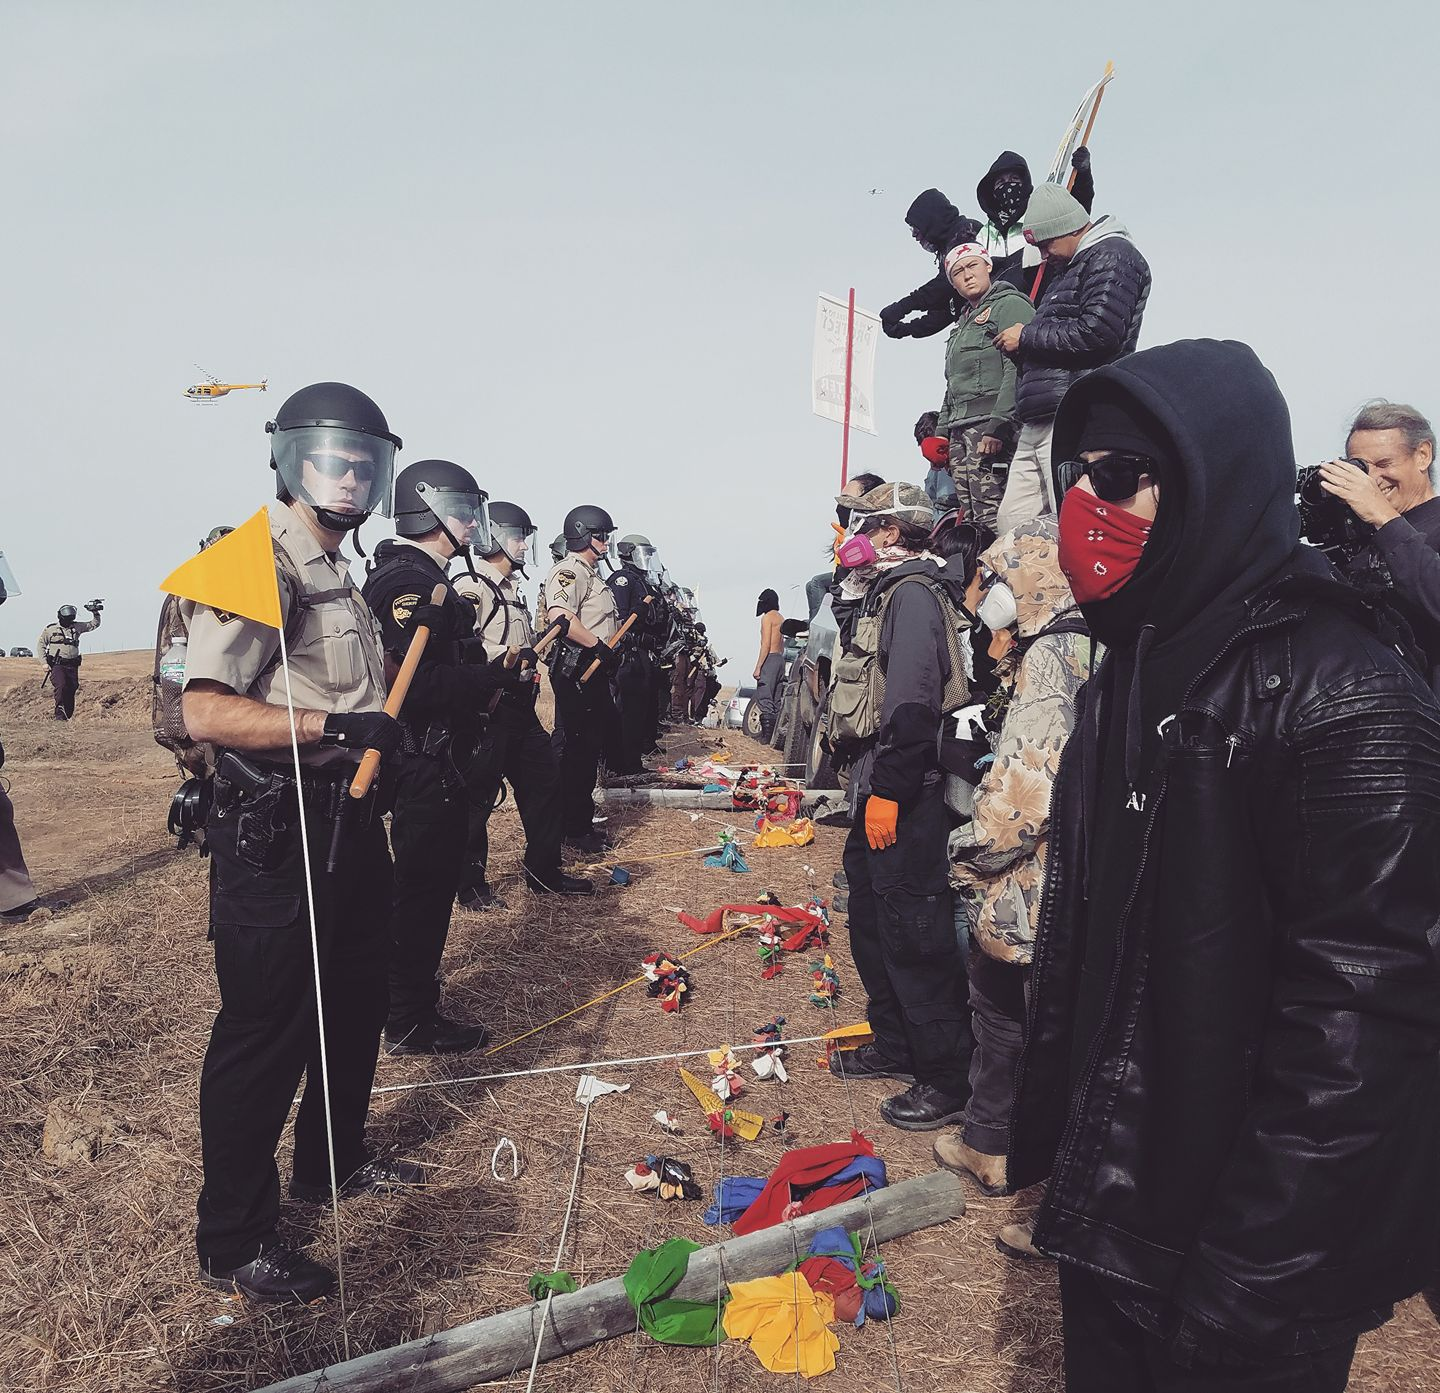 Mark Trahant: More injustice as police move in at Standing Rock